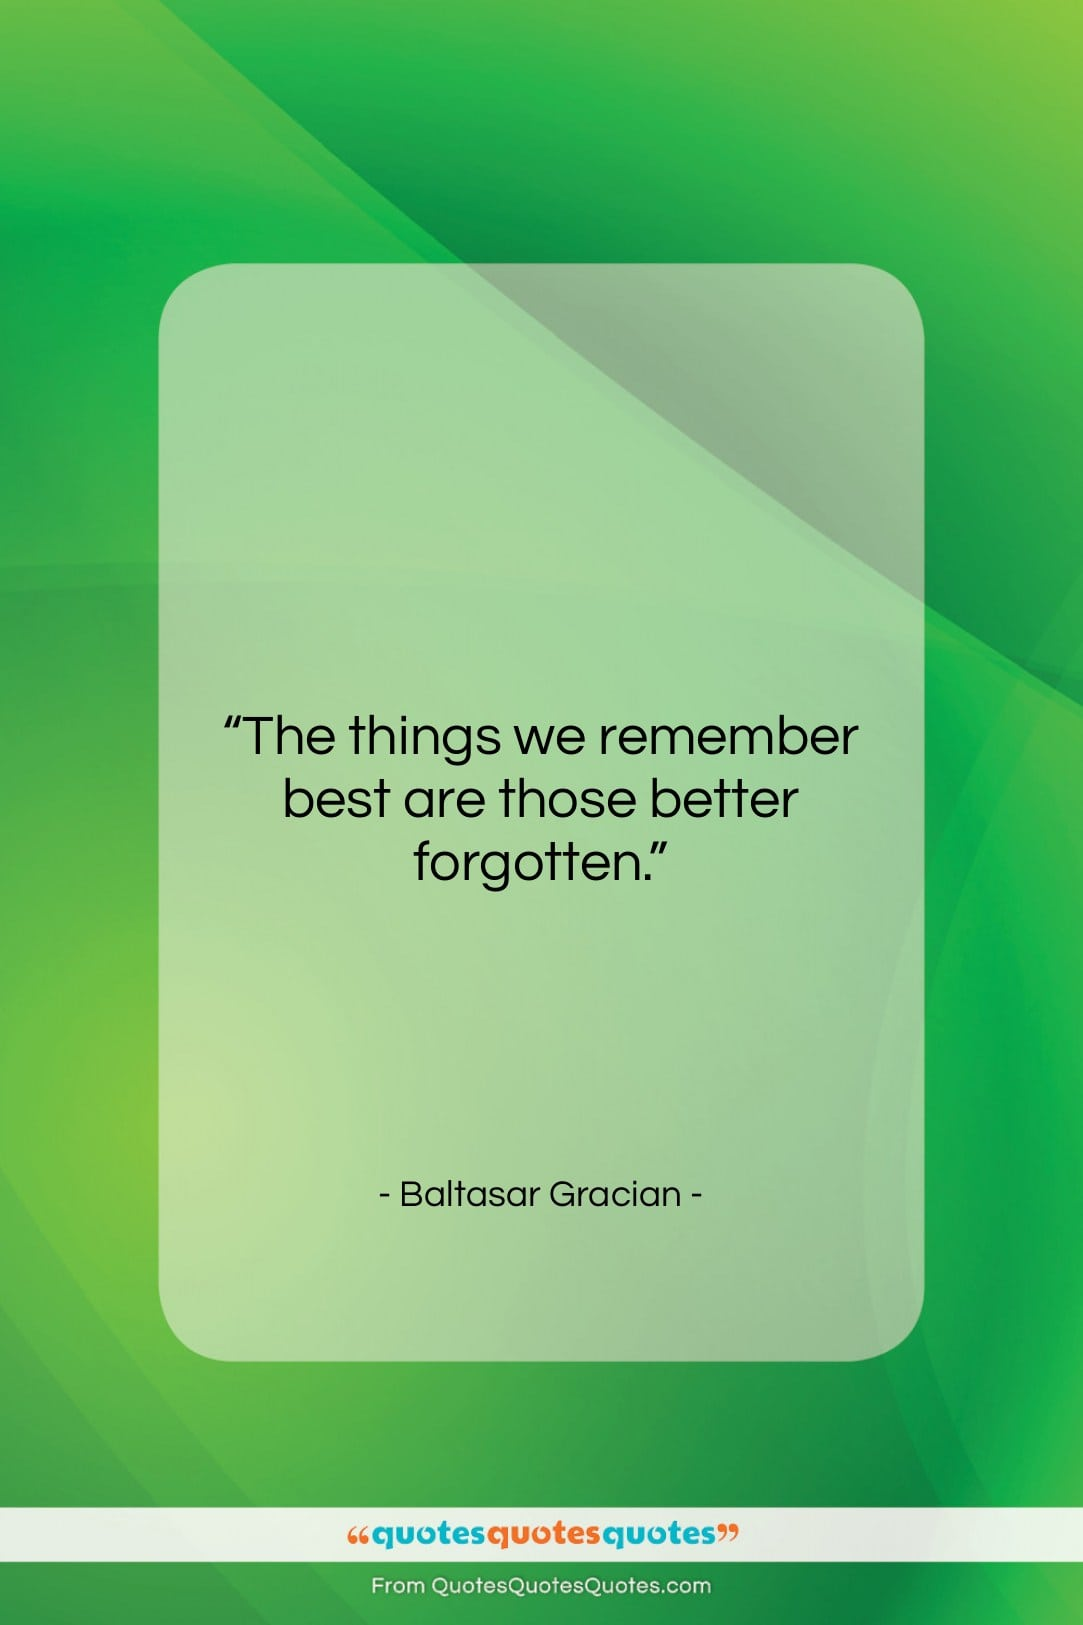 """Baltasar Gracian quote: """"The things we remember best are those…""""- at QuotesQuotesQuotes.com"""